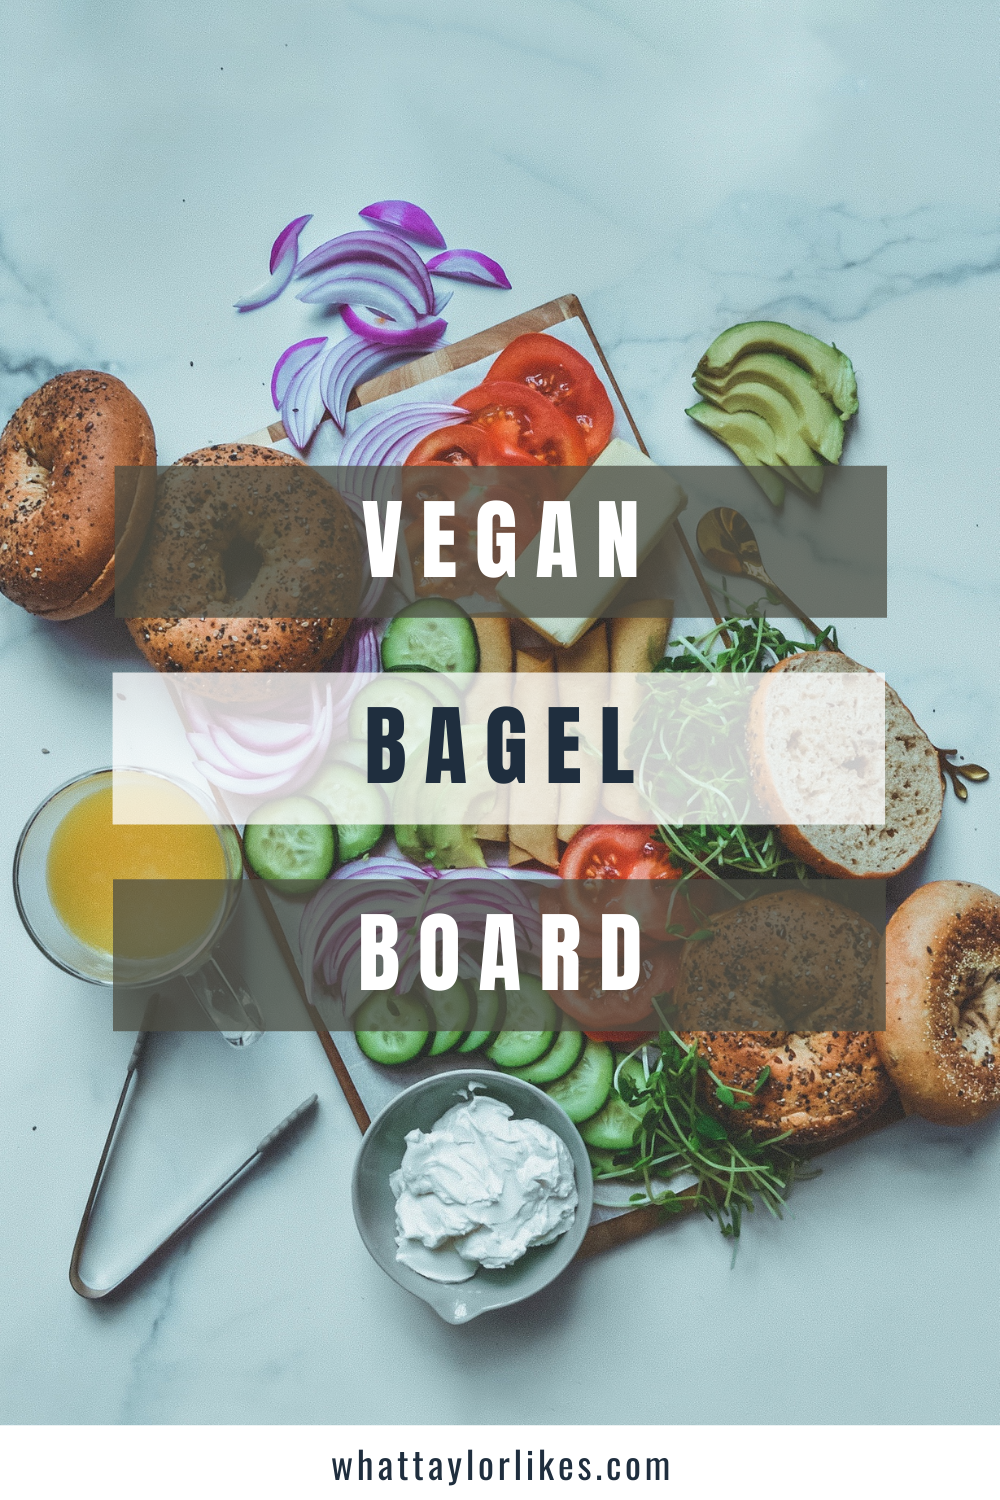 How to Make a Vegan Bagel Board - What Taylor Likes